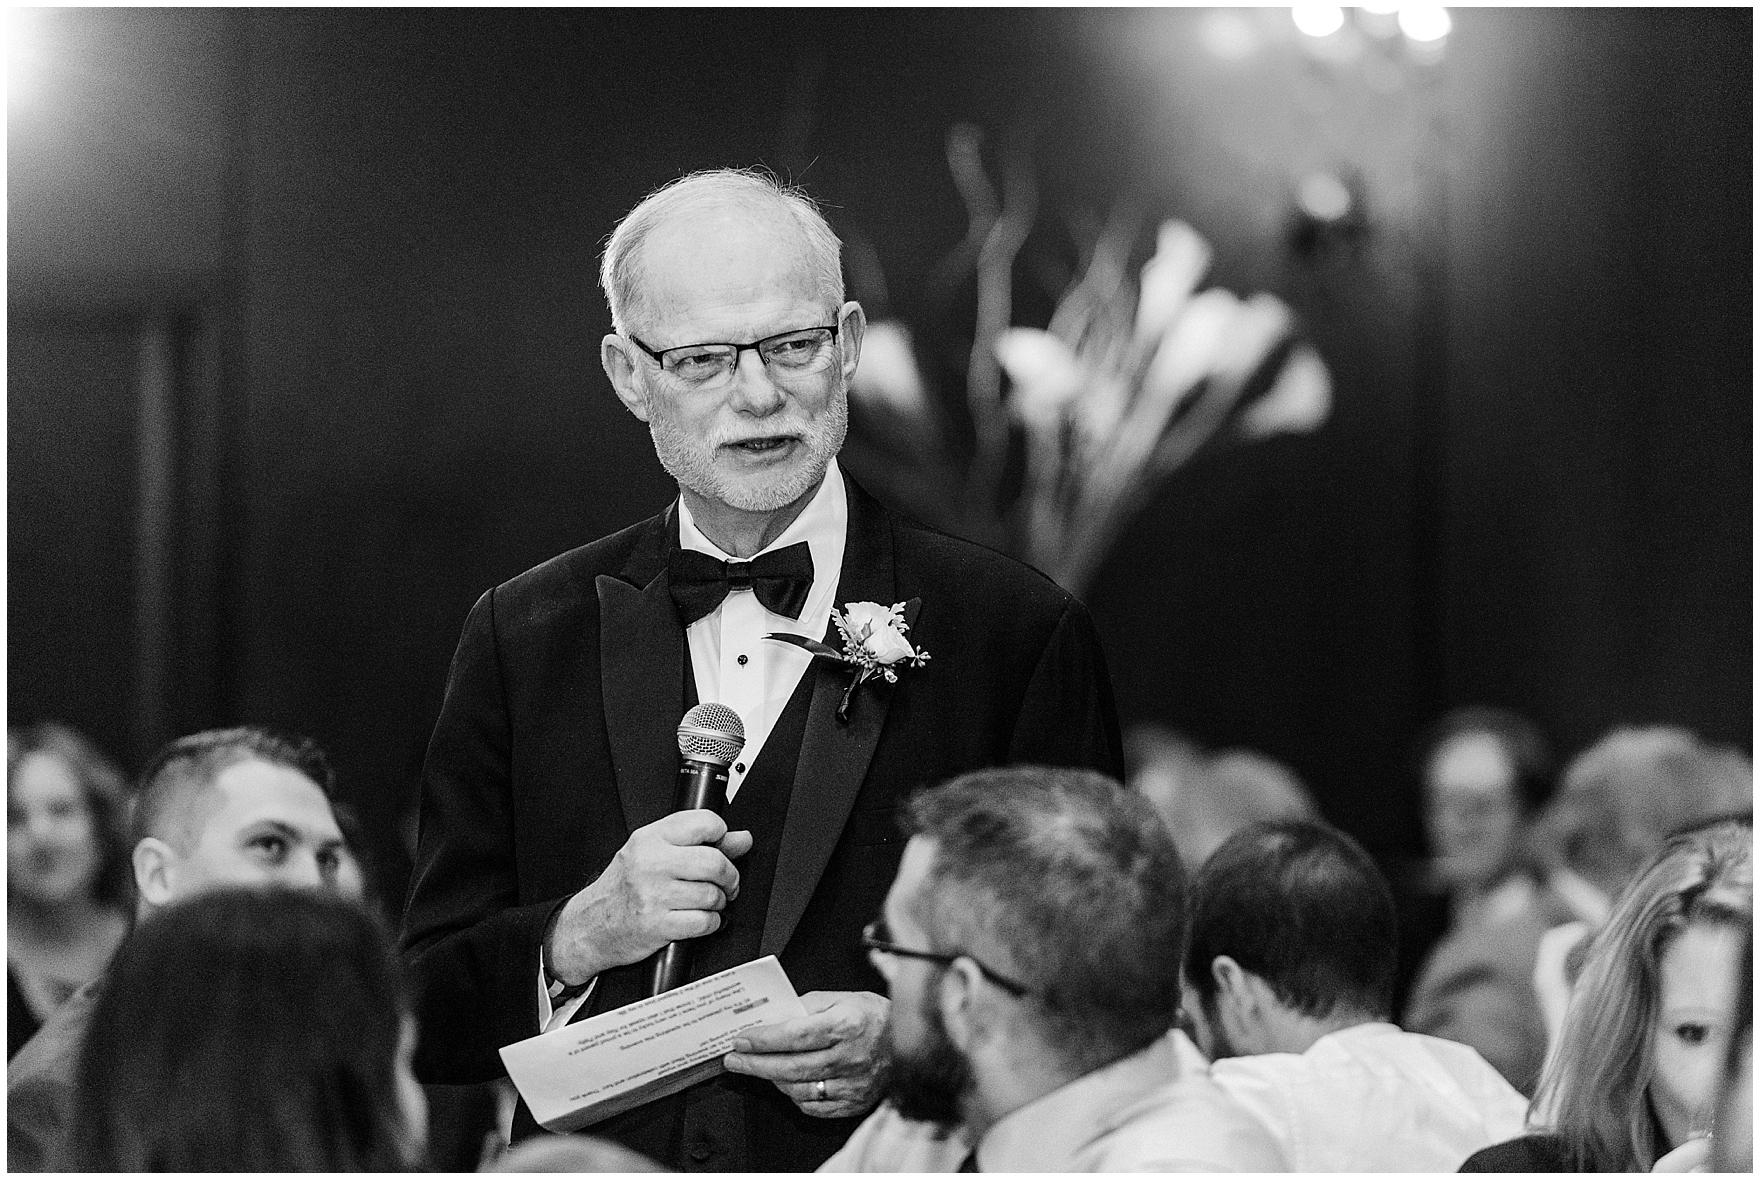 The father of the bride gives a toast during a Newberry Library Chicago wedding reception.